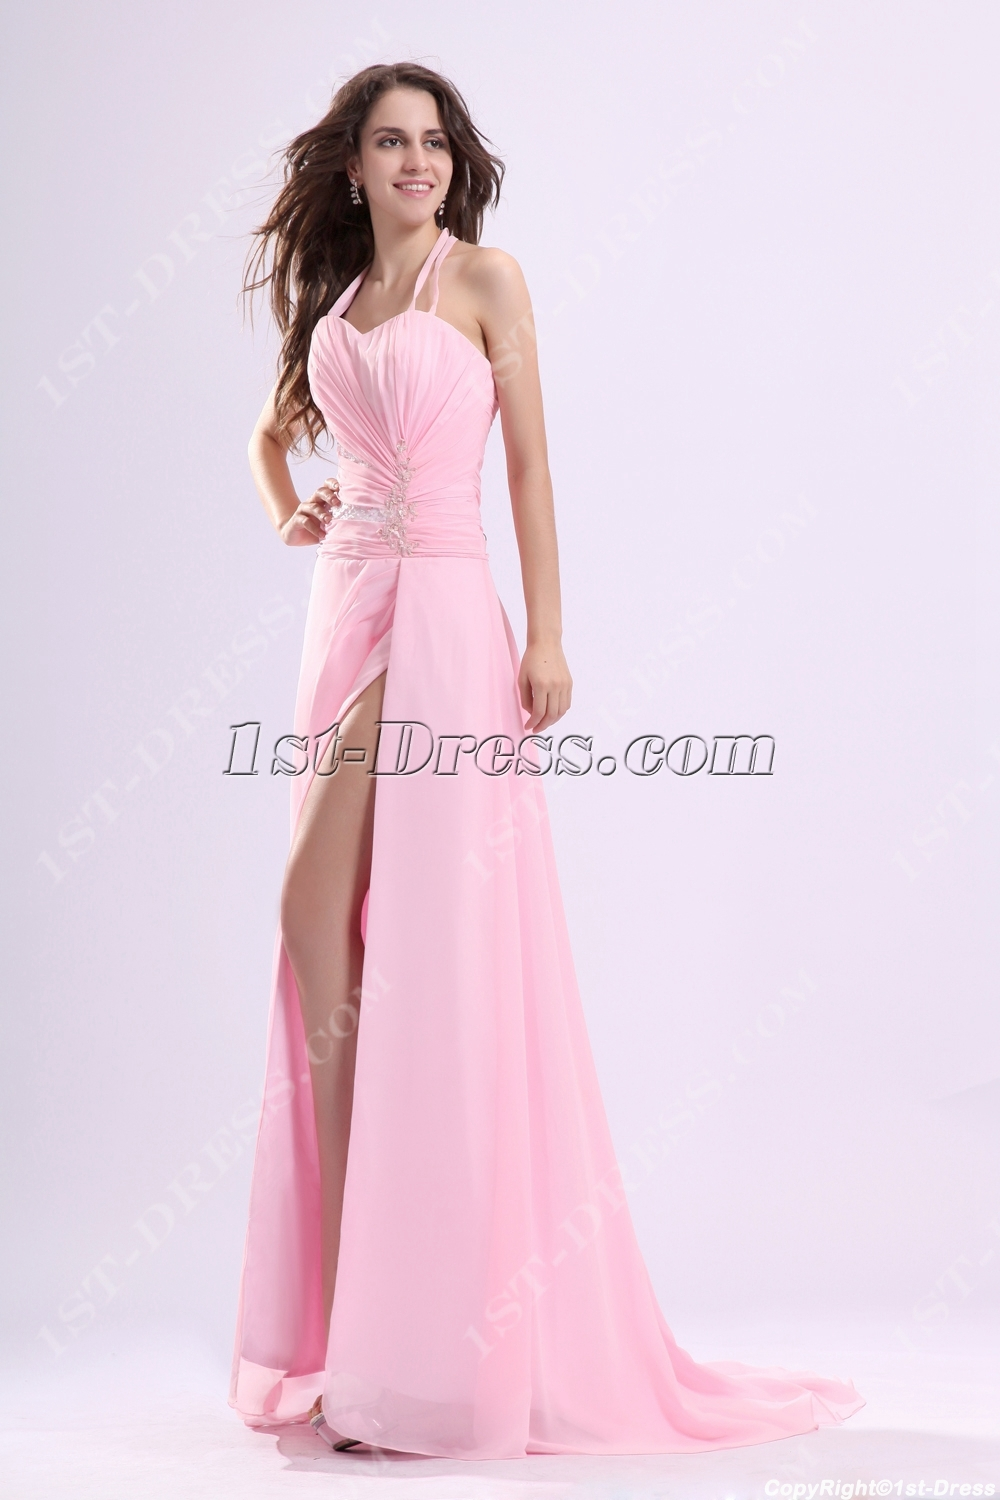 images/201311/big/Halter-Pink-Long-Sexy-Evening-Dress-with-Slit-Front-3515-b-1-1384424388.jpg